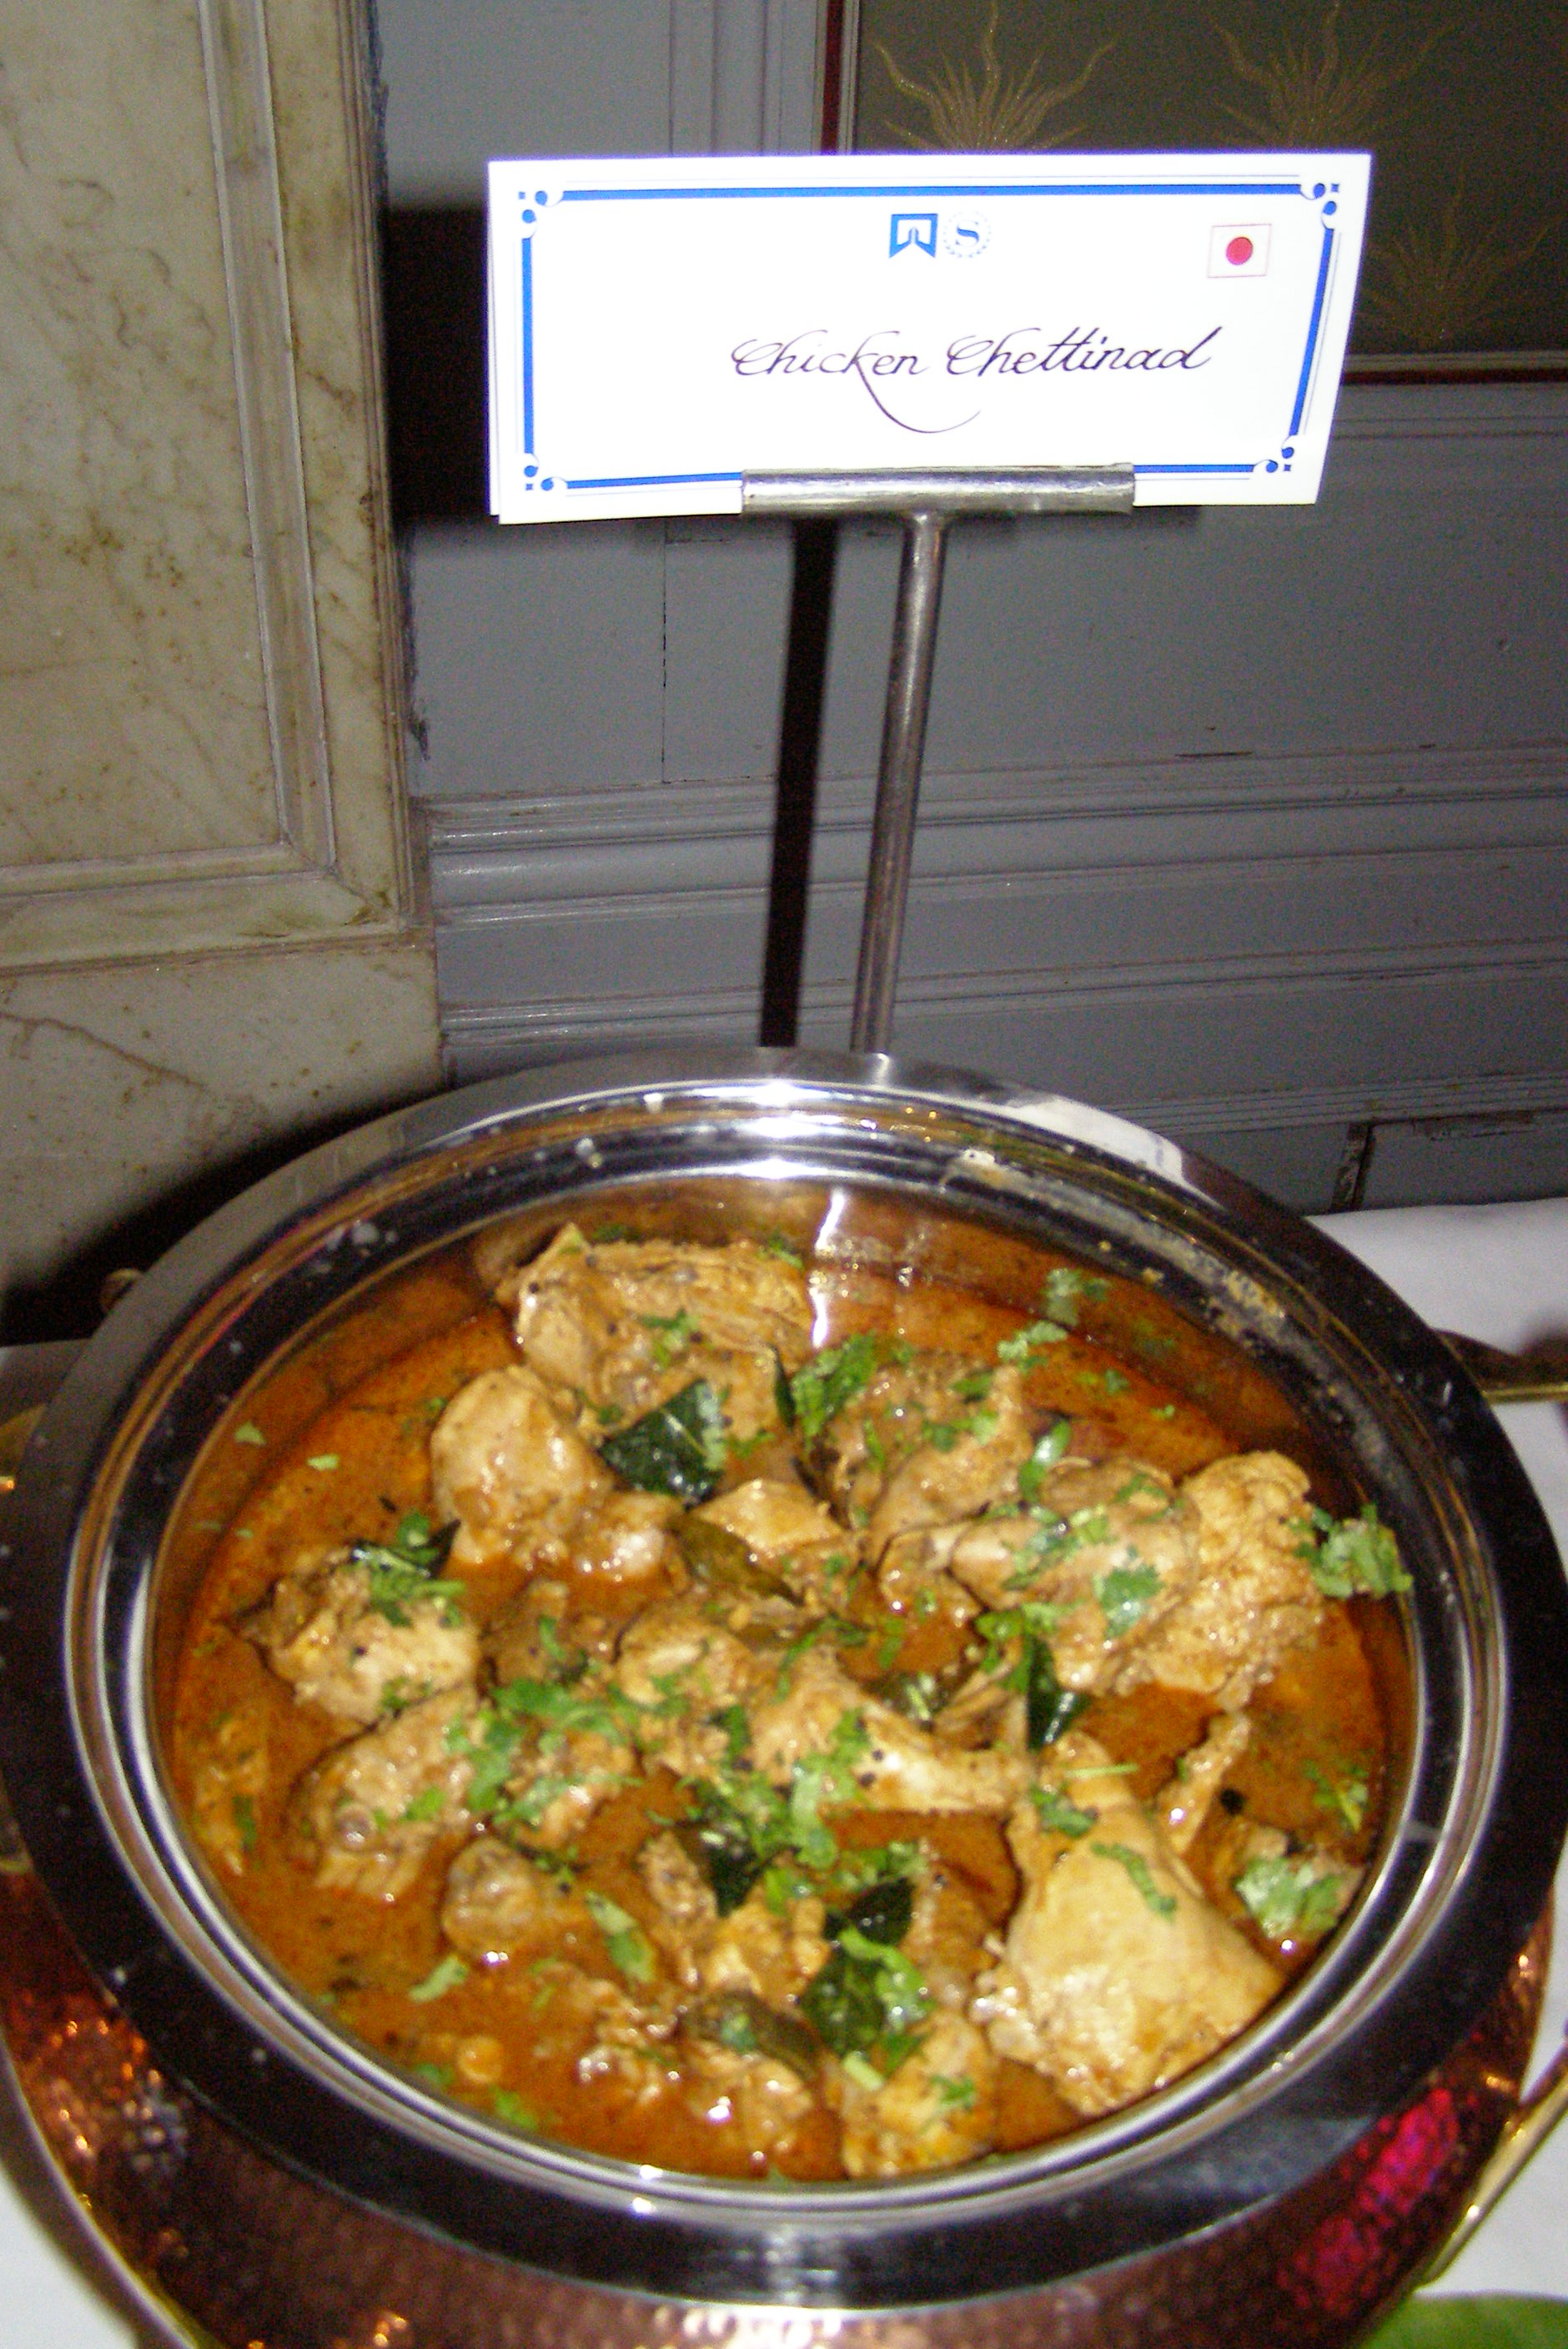 Chettinad cuisine - Wikipedia